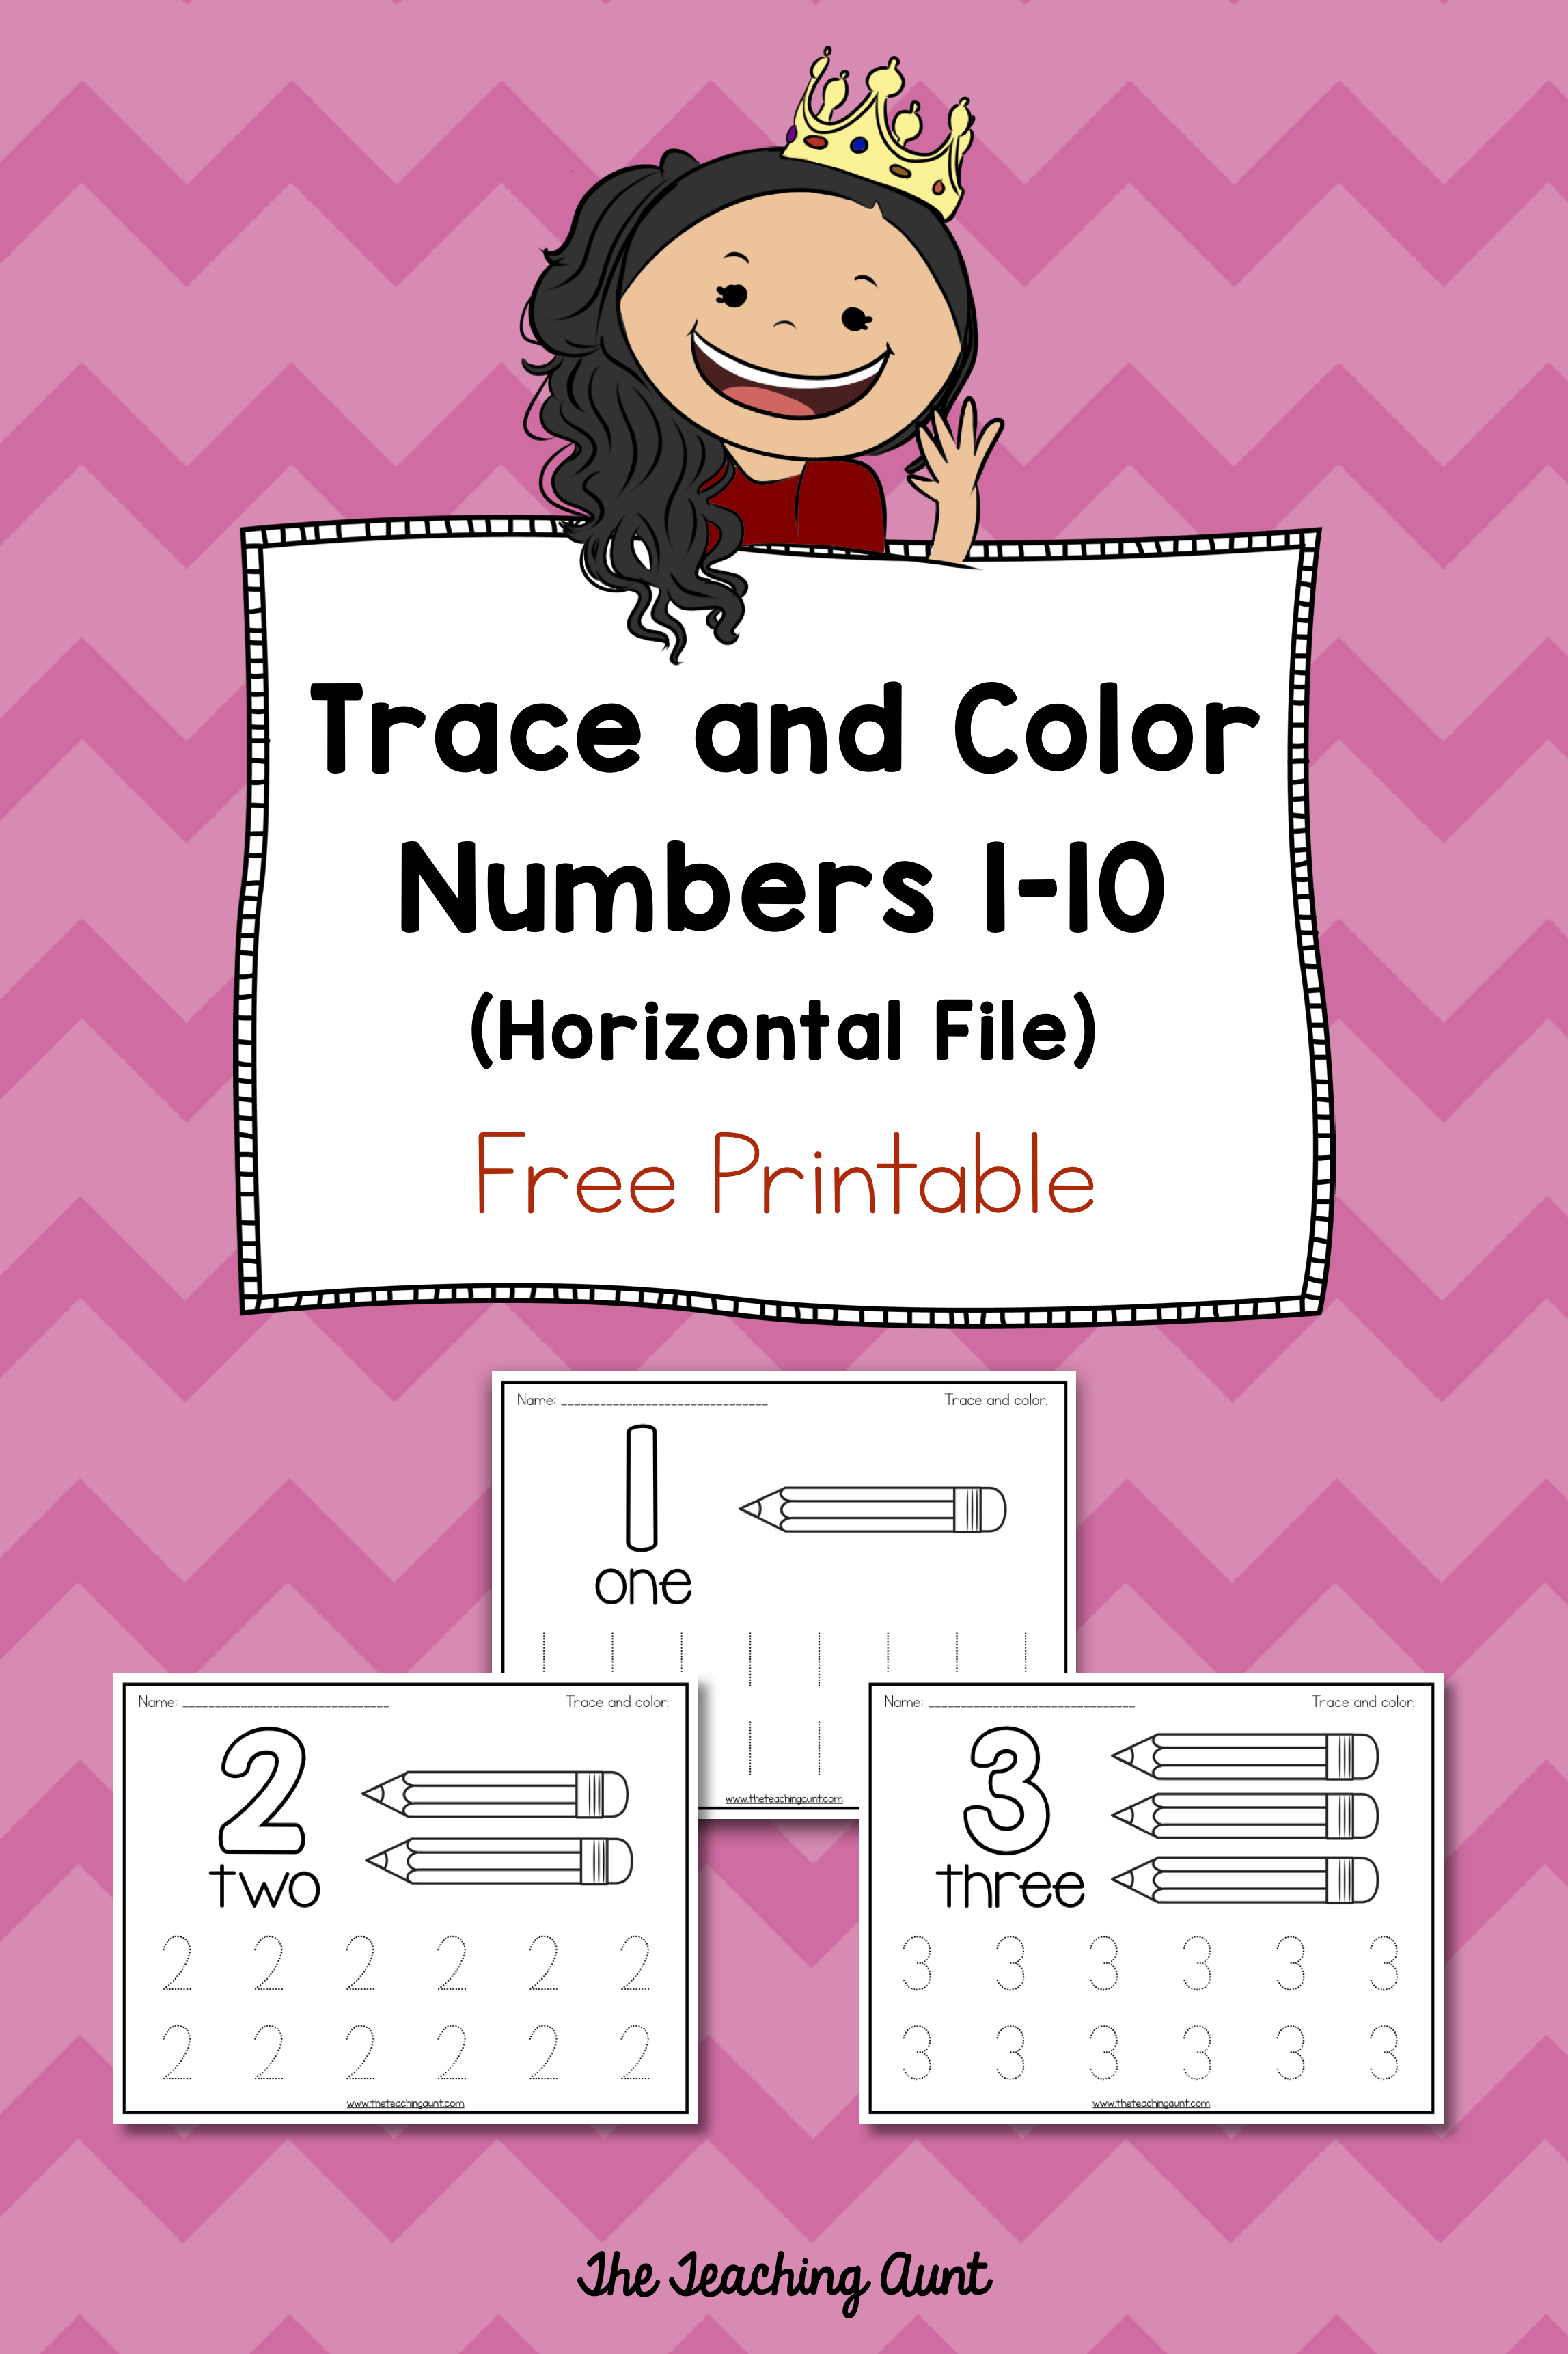 Trace and Color Number Pages Free Printable